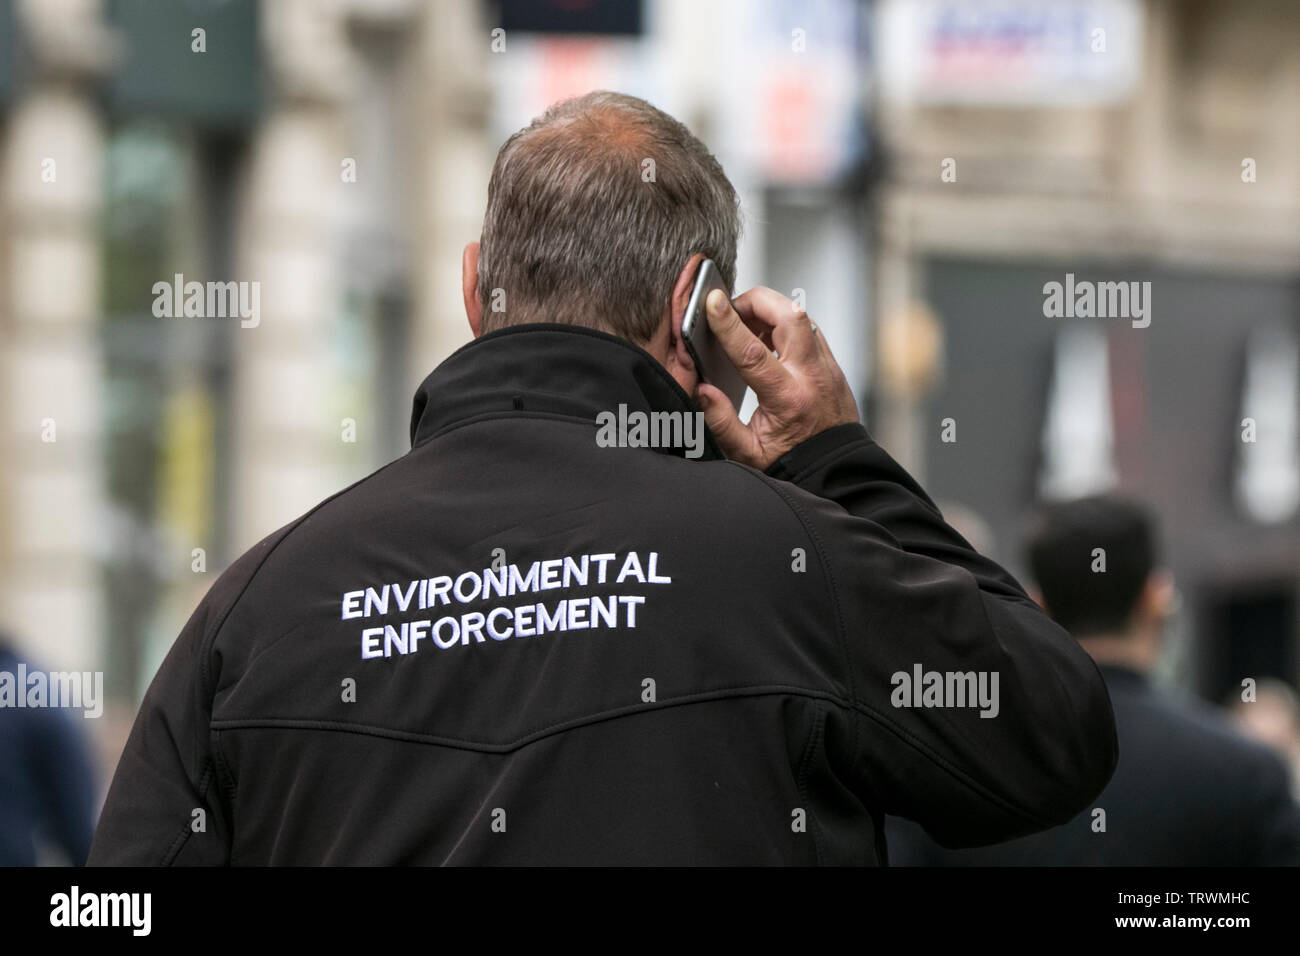 A civil enforcement officer patrols the city centre looking for littering offenders on the streets of Manchester, UK - Stock Image